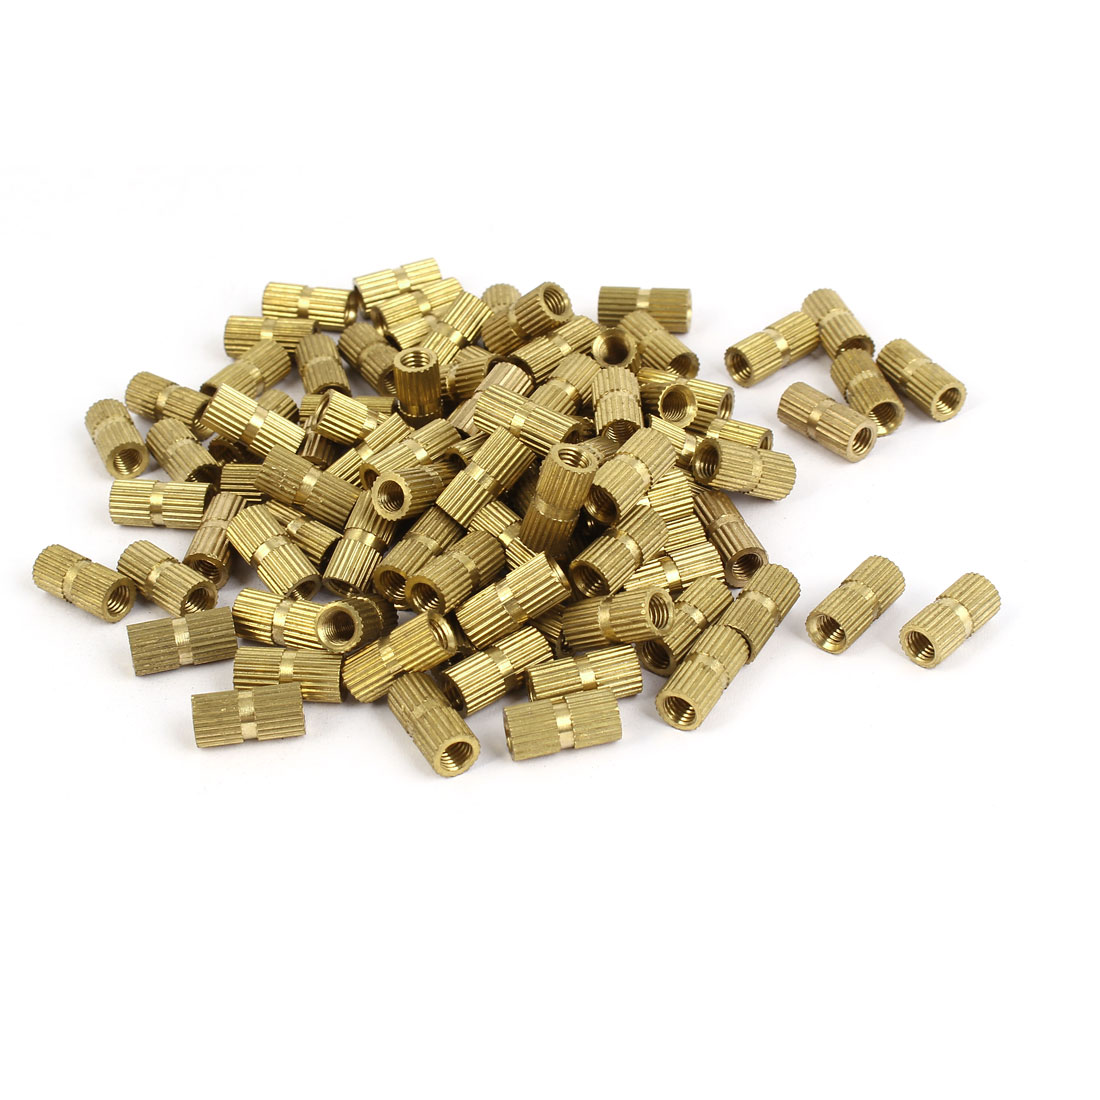 M5 x 15mm Brass Cylinder Injection Molding Knurled Threaded Insert Nuts 100PCS